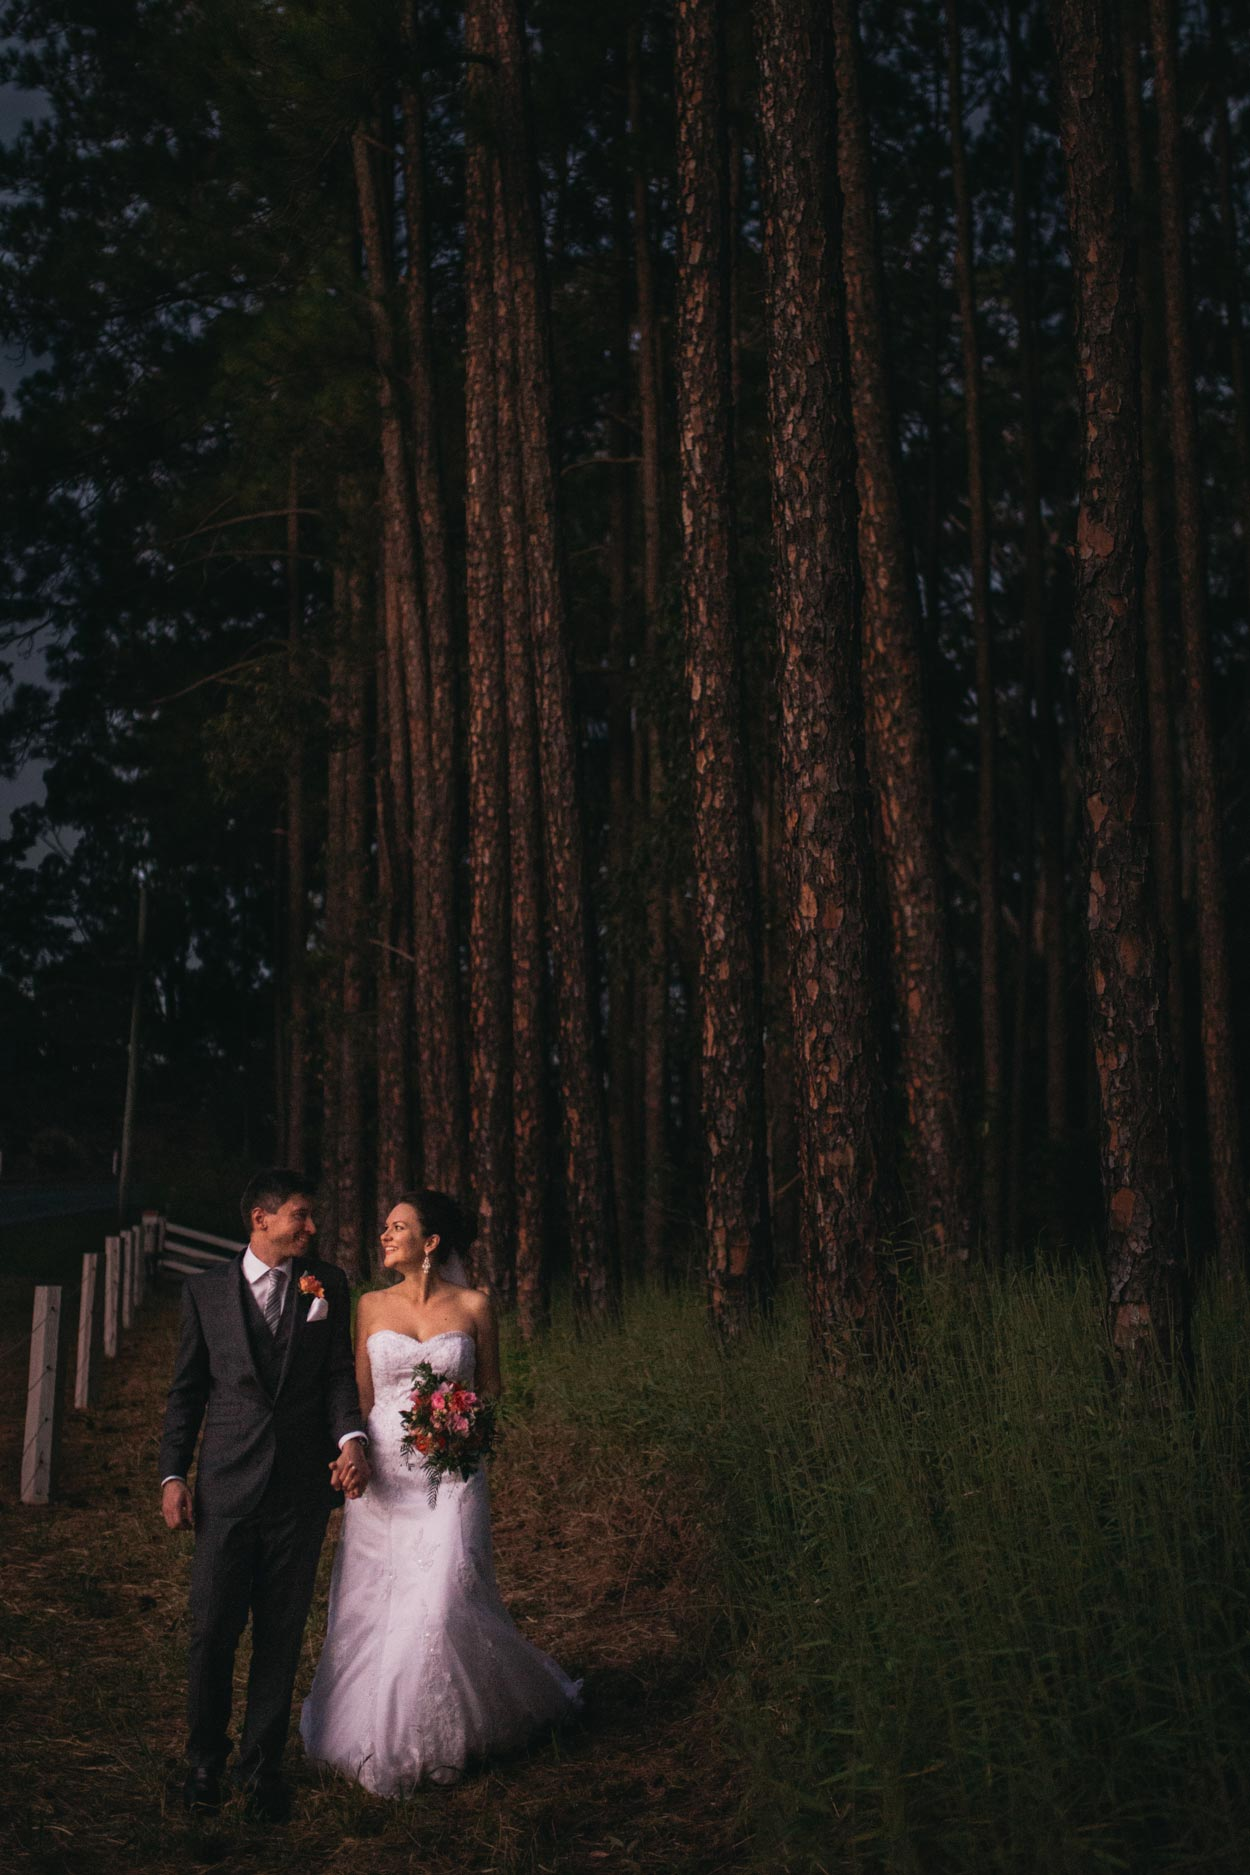 Montville Moments Wedding Photographer - Brisbane, Sunshine Coast, Australian Destination Elopement